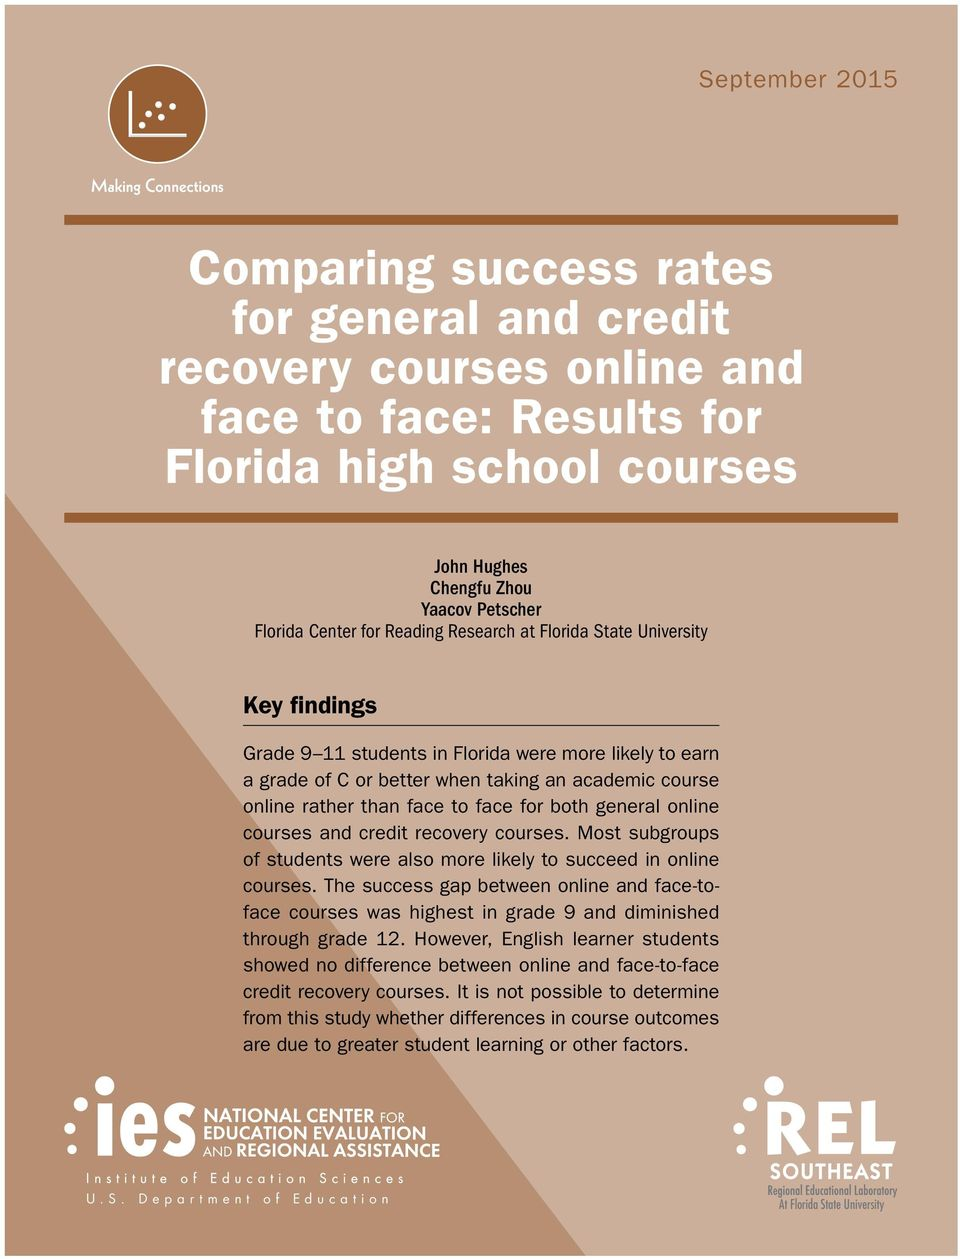 online rather than face to face for both general online courses and credit recovery courses. Most subgroups of students were also more likely to succeed in online courses.